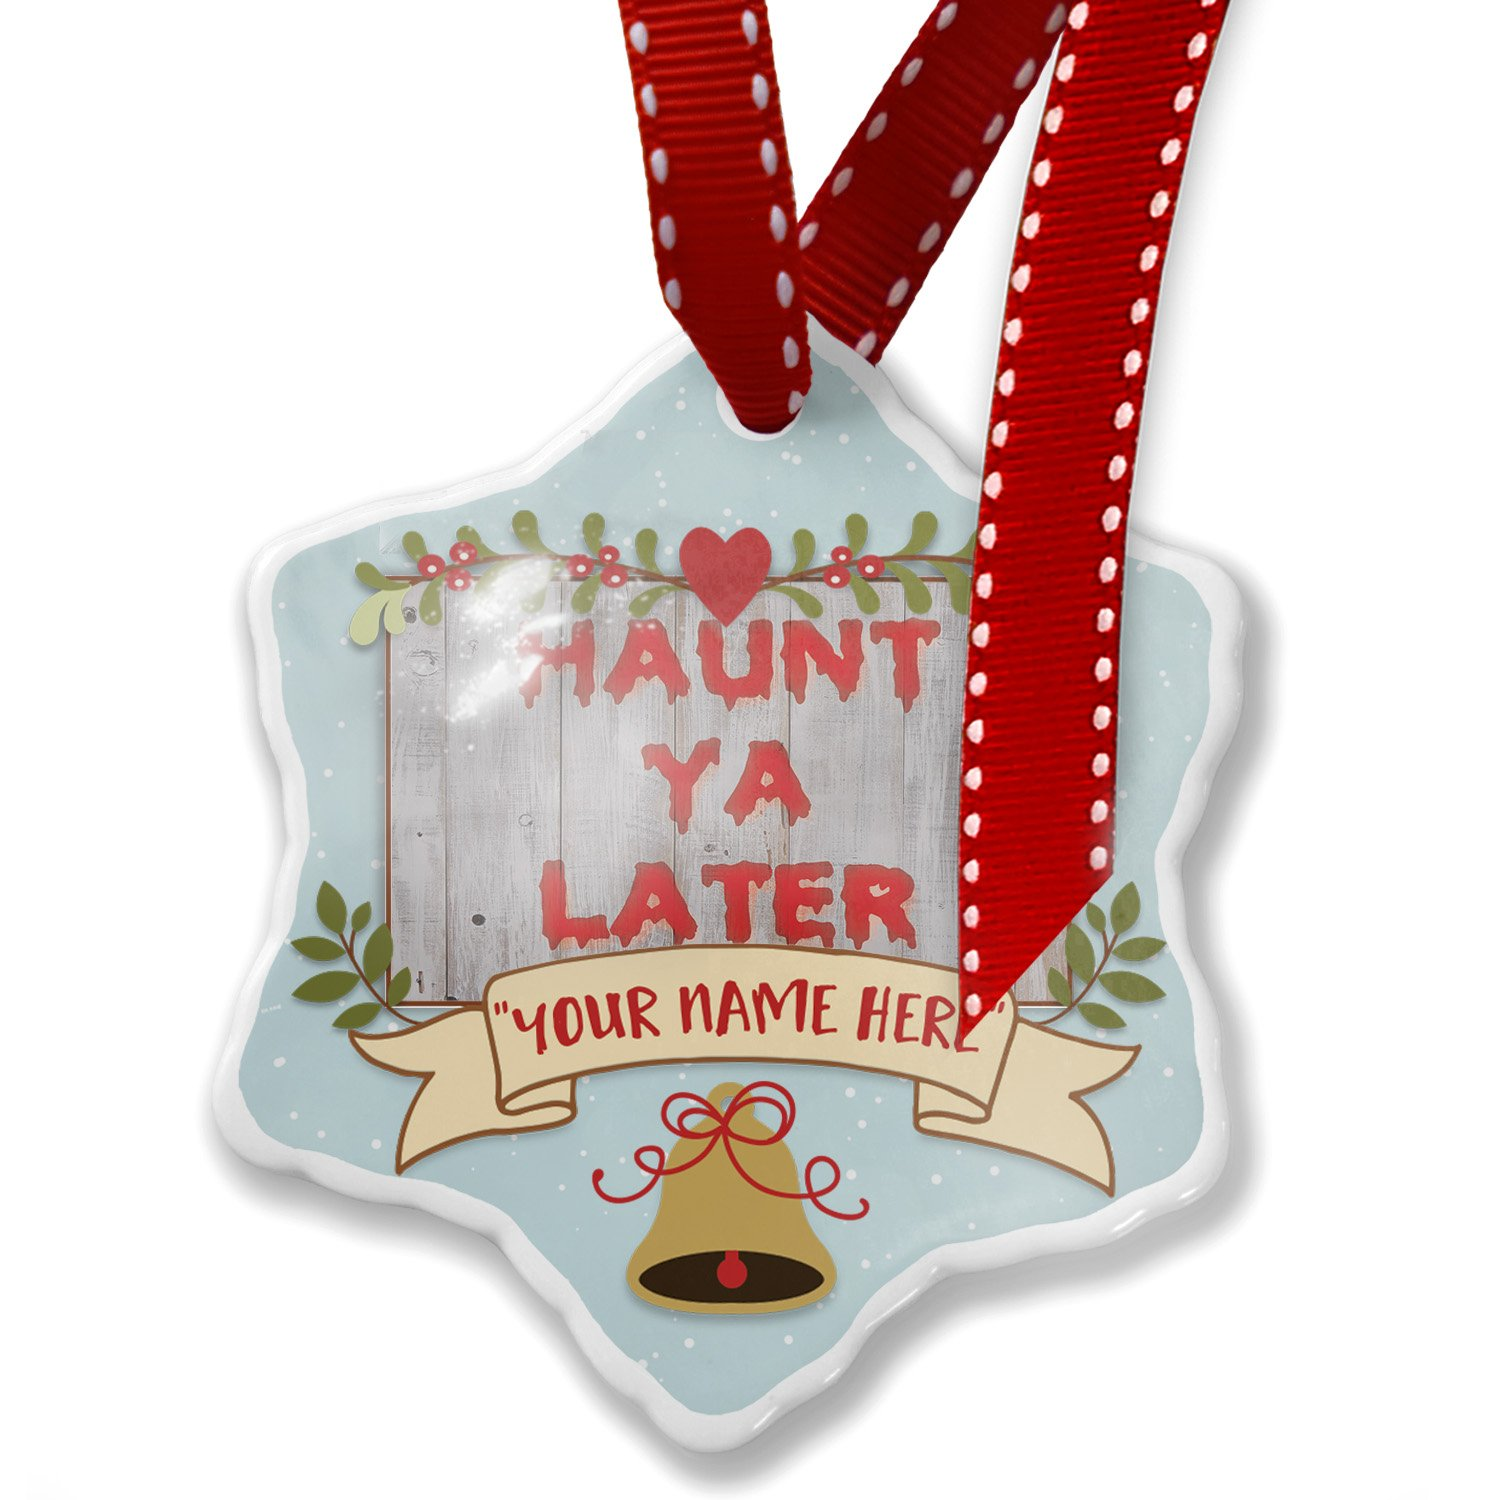 Add Your Own Custom Name, Haunt Ya Later Halloween Bloody Wall Christmas Ornament NEONBLOND